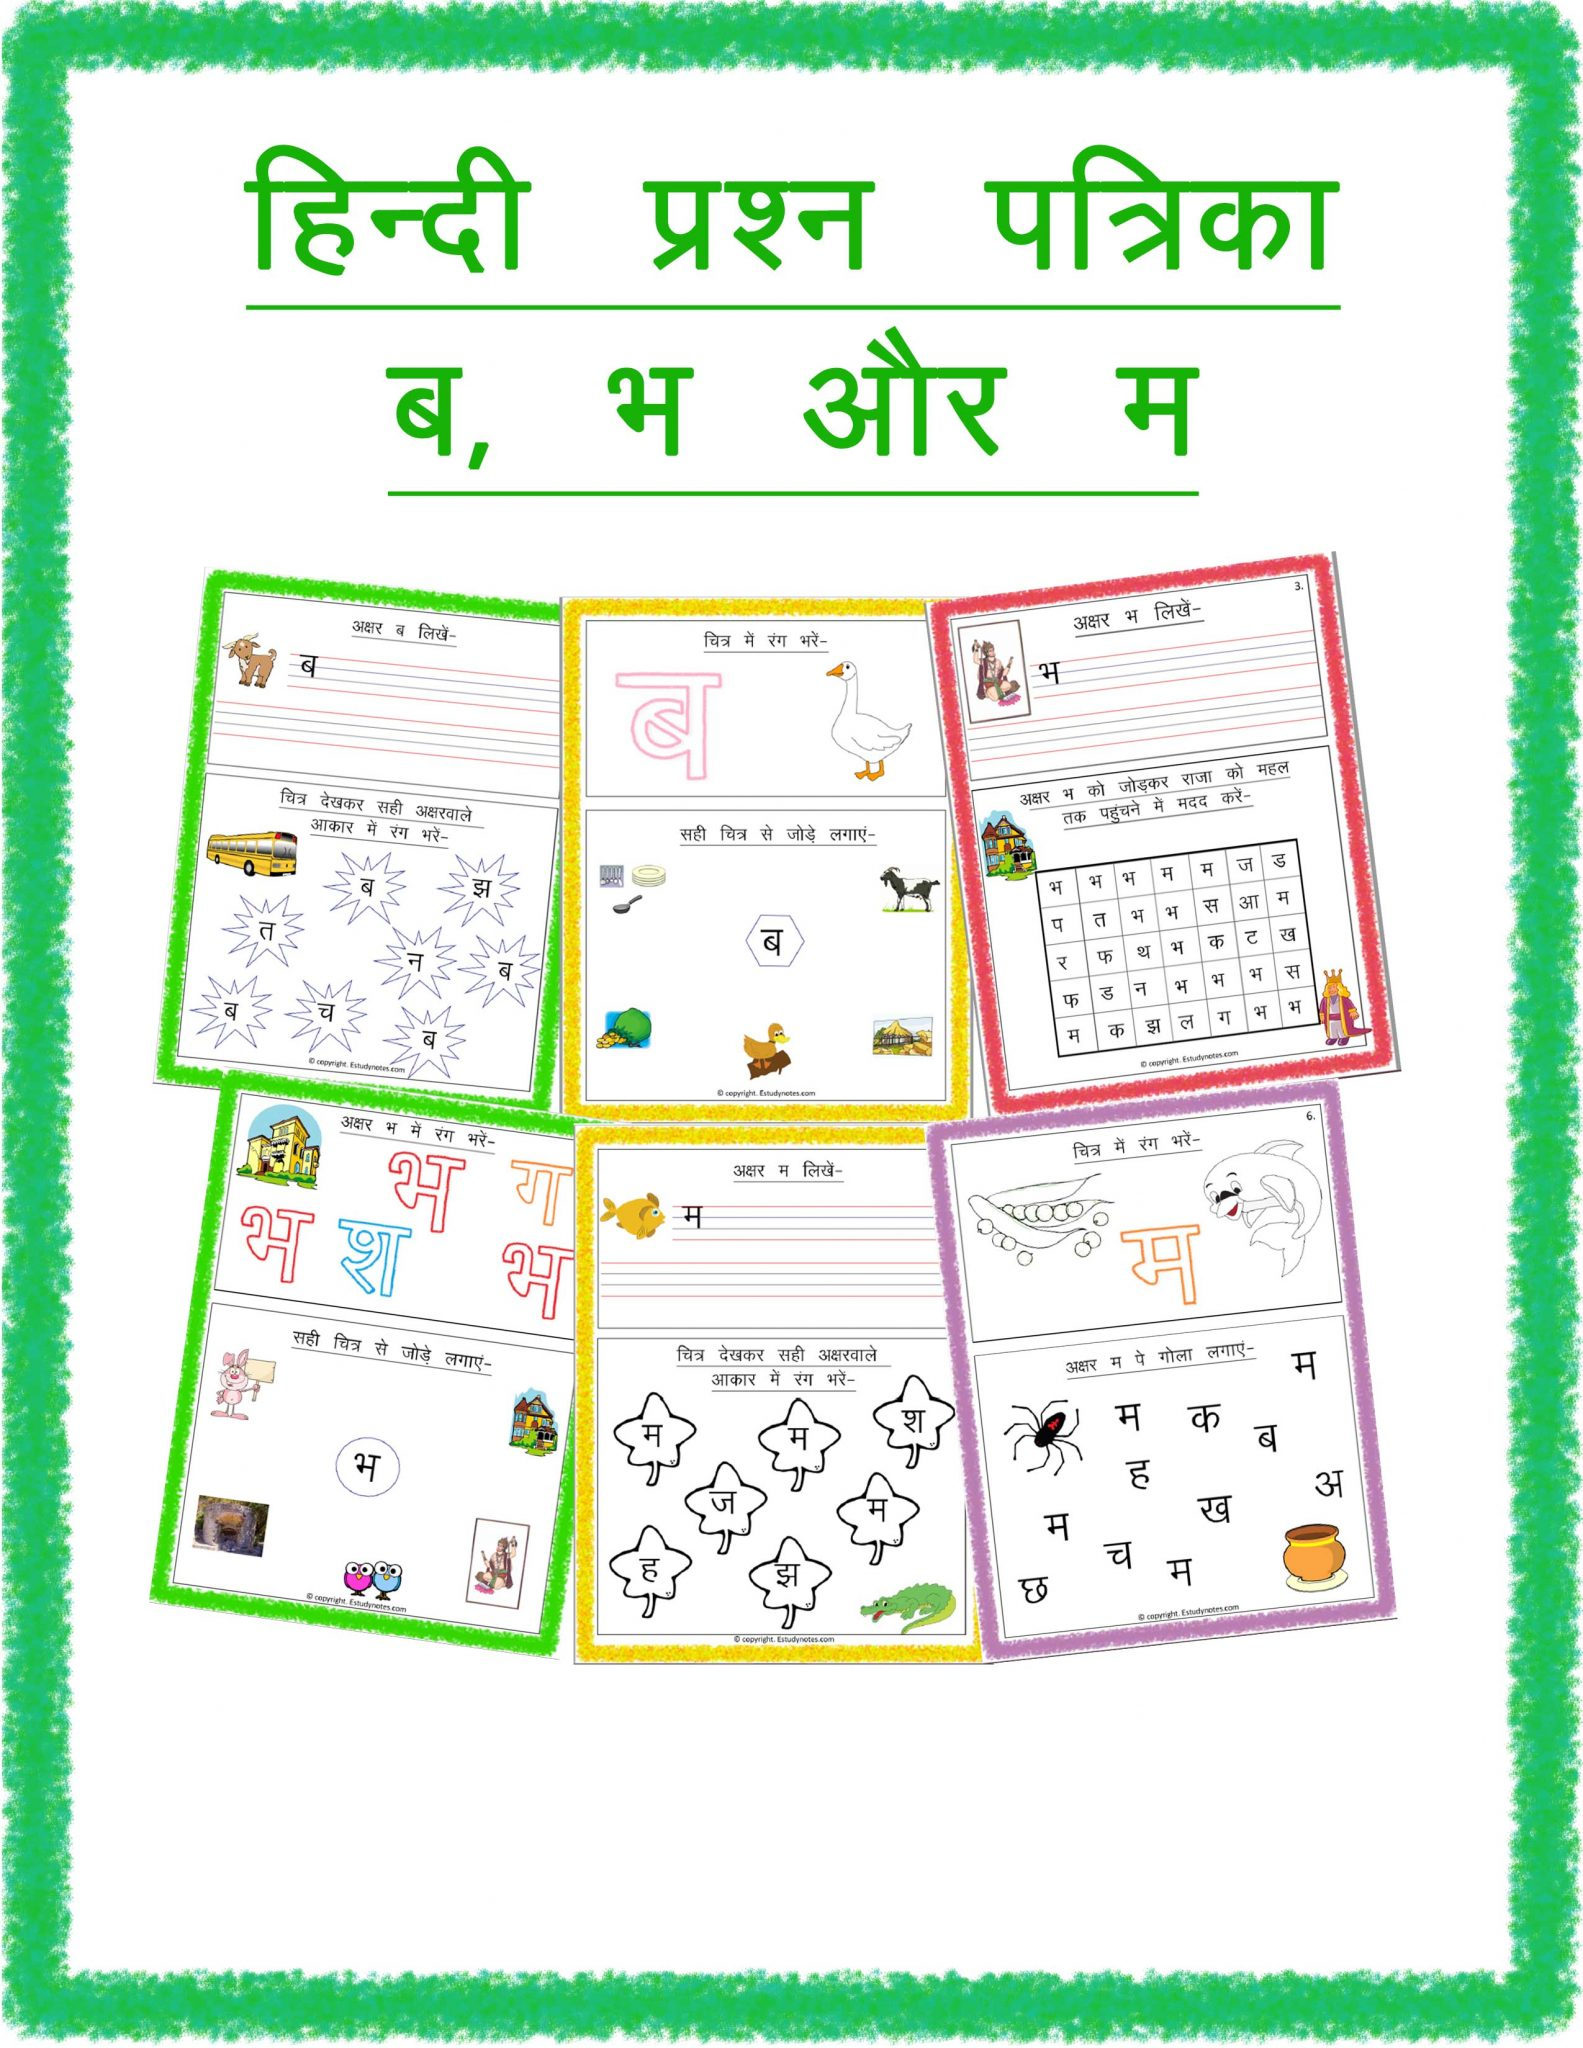 Hindi Test Paper Letter Ba Bha And Ma Nursery And